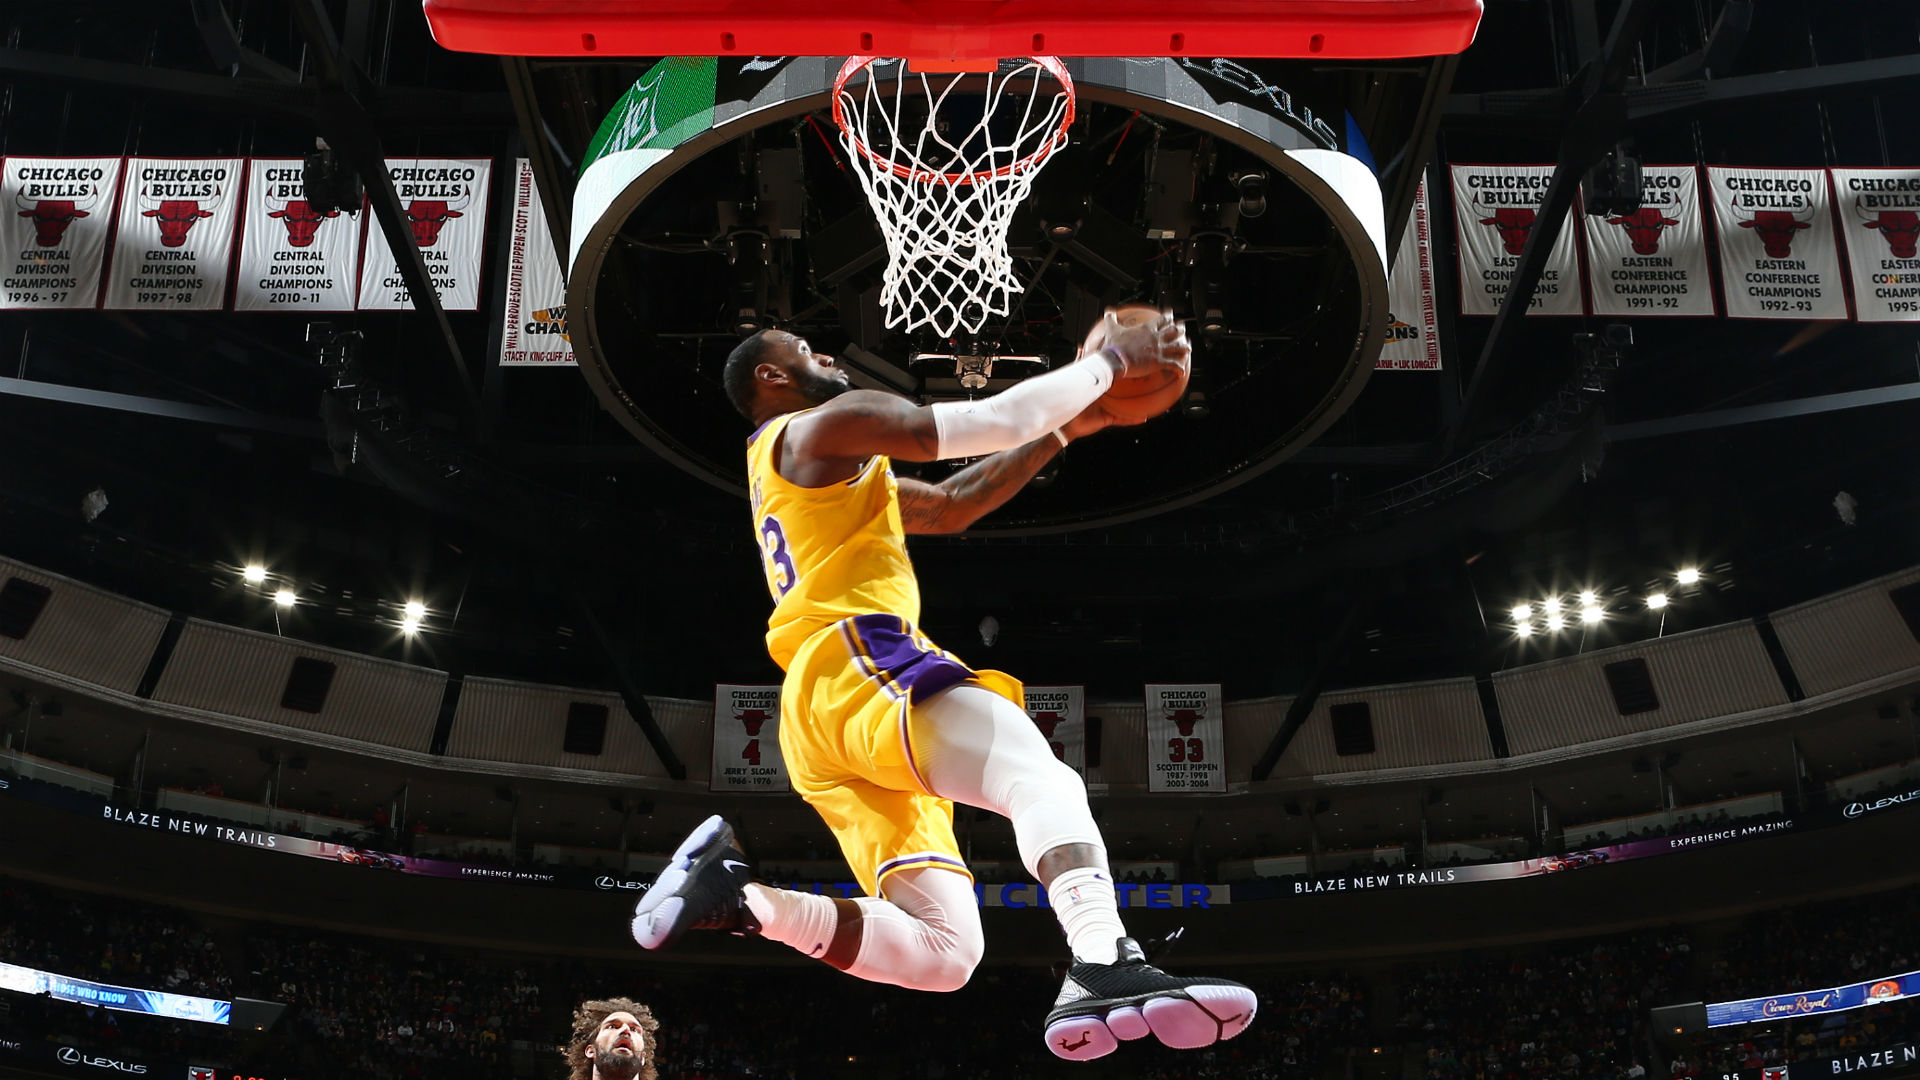 Lebron James Steals The Show With Two Big Dunks In Lakers Win Over Bulls Nba Com Canada The Official Site Of The Nba